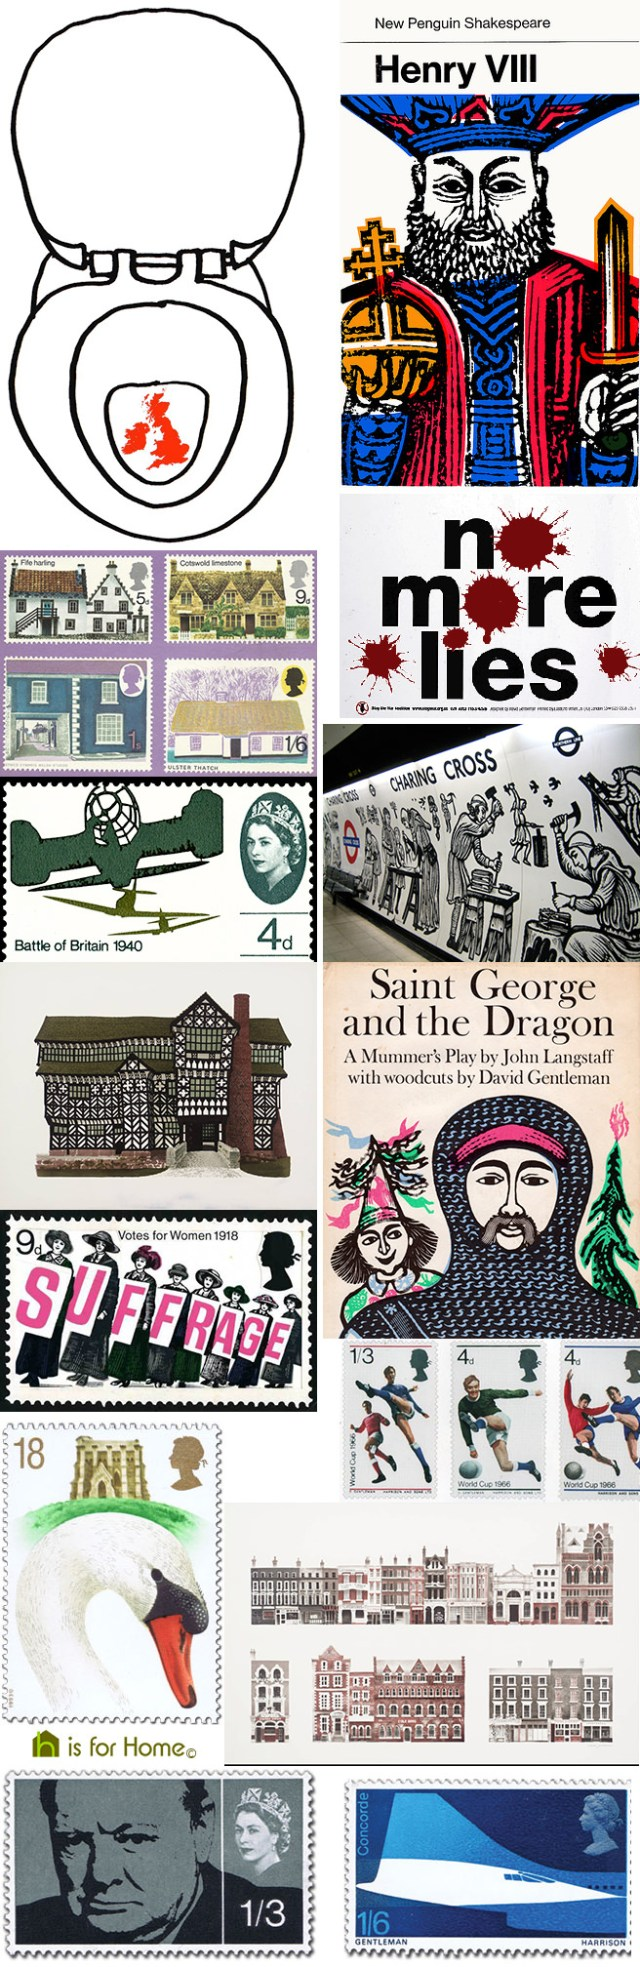 Mosaic of David Gentleman designs | H is for Home